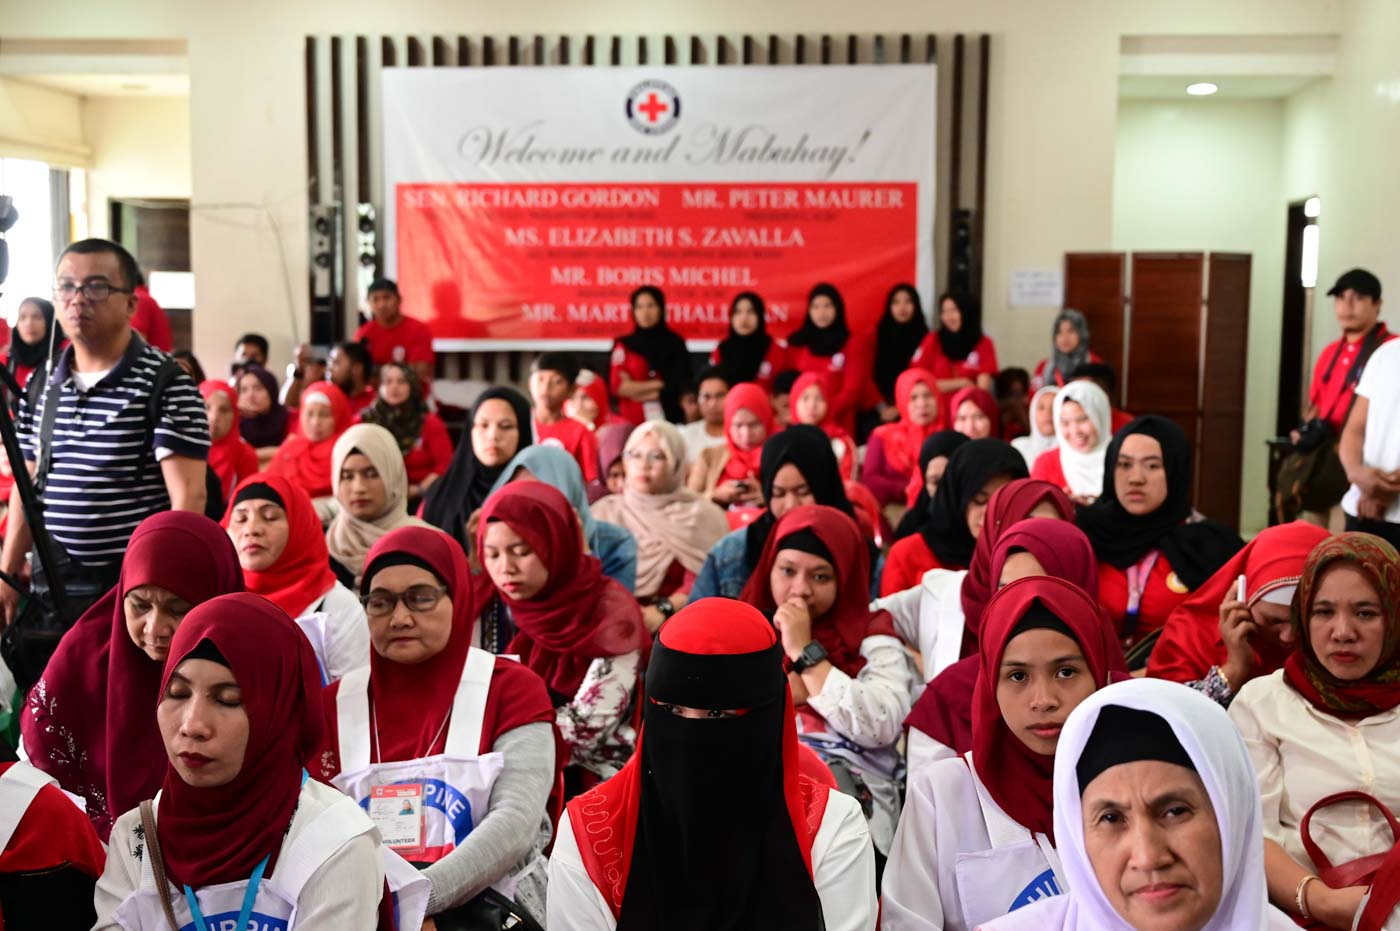 PRC AND ICRC. From day one, the ICRC has been working with the Philippine Red Cross in providing aid to people affected by the Marawi crisis. Photo by Alecs Ongcal/ICRC